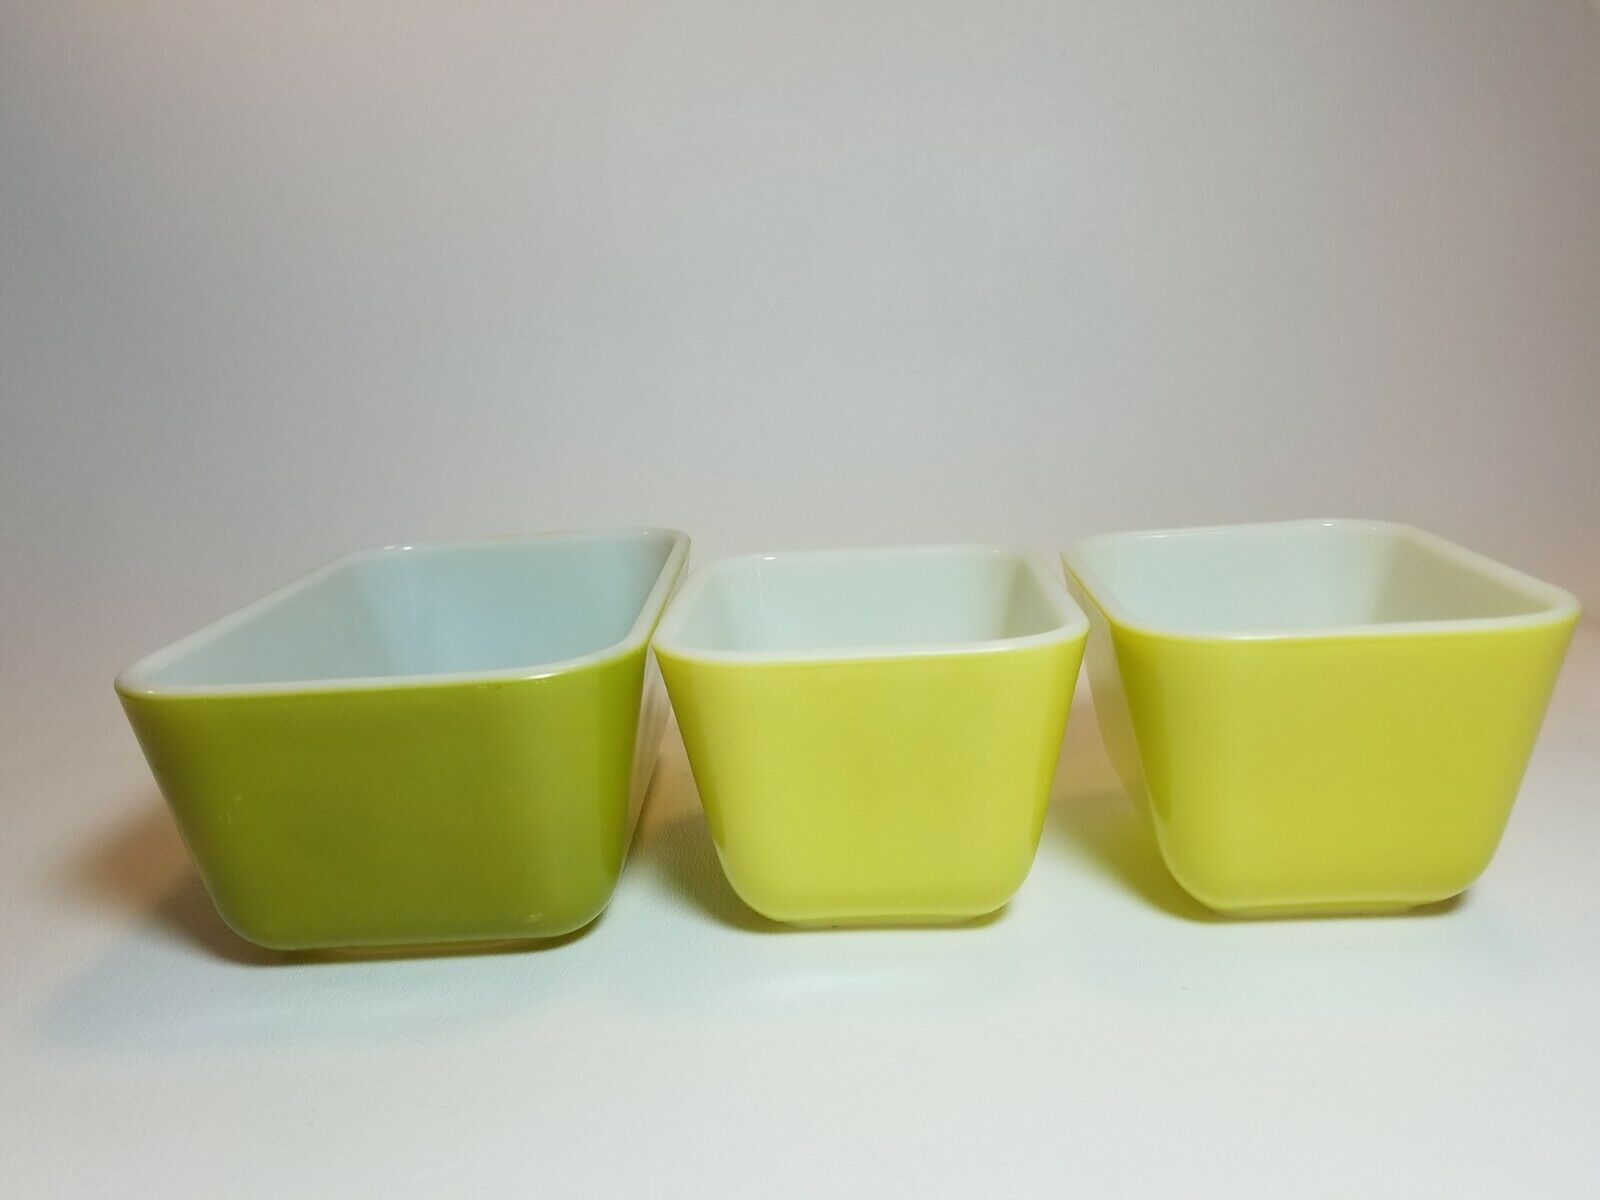 Vintage Pyrex Verde Green and Yellow 501 & 502 Refrigerator Dishes No Lids image 3